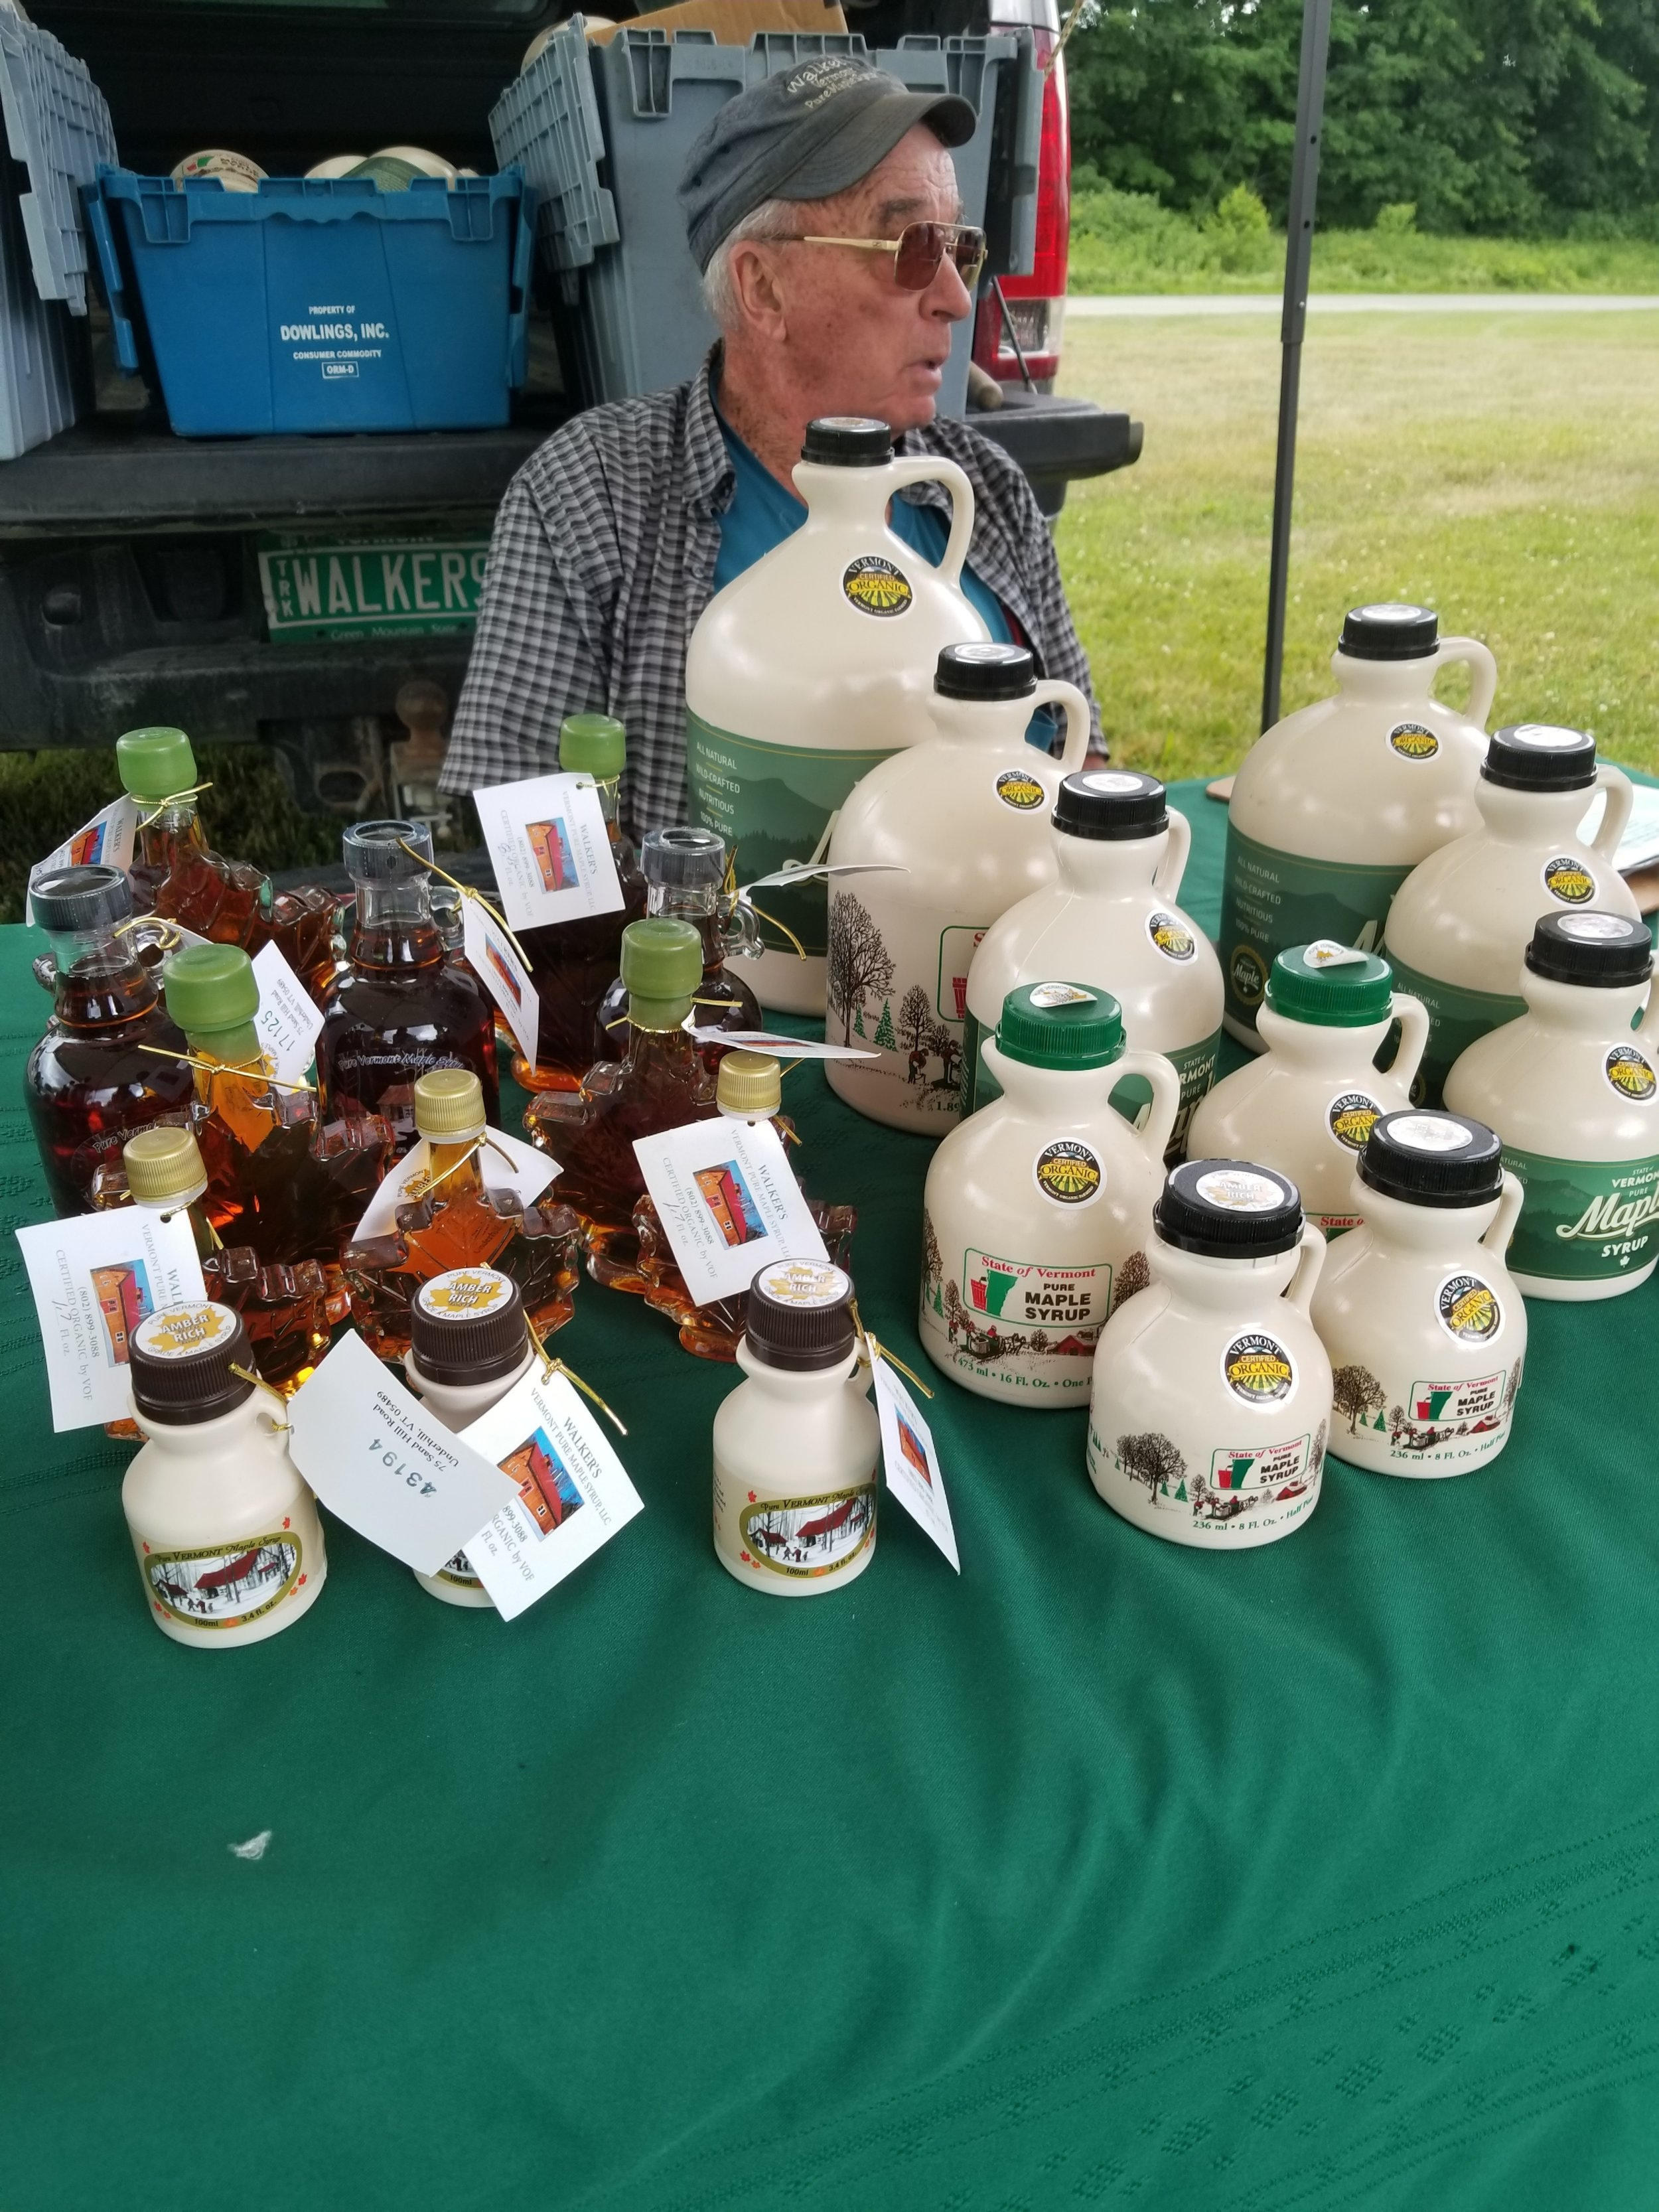 Walker's Maple Syrup - Organic Vermont Maple Syrup made in Underhill for 3 generations